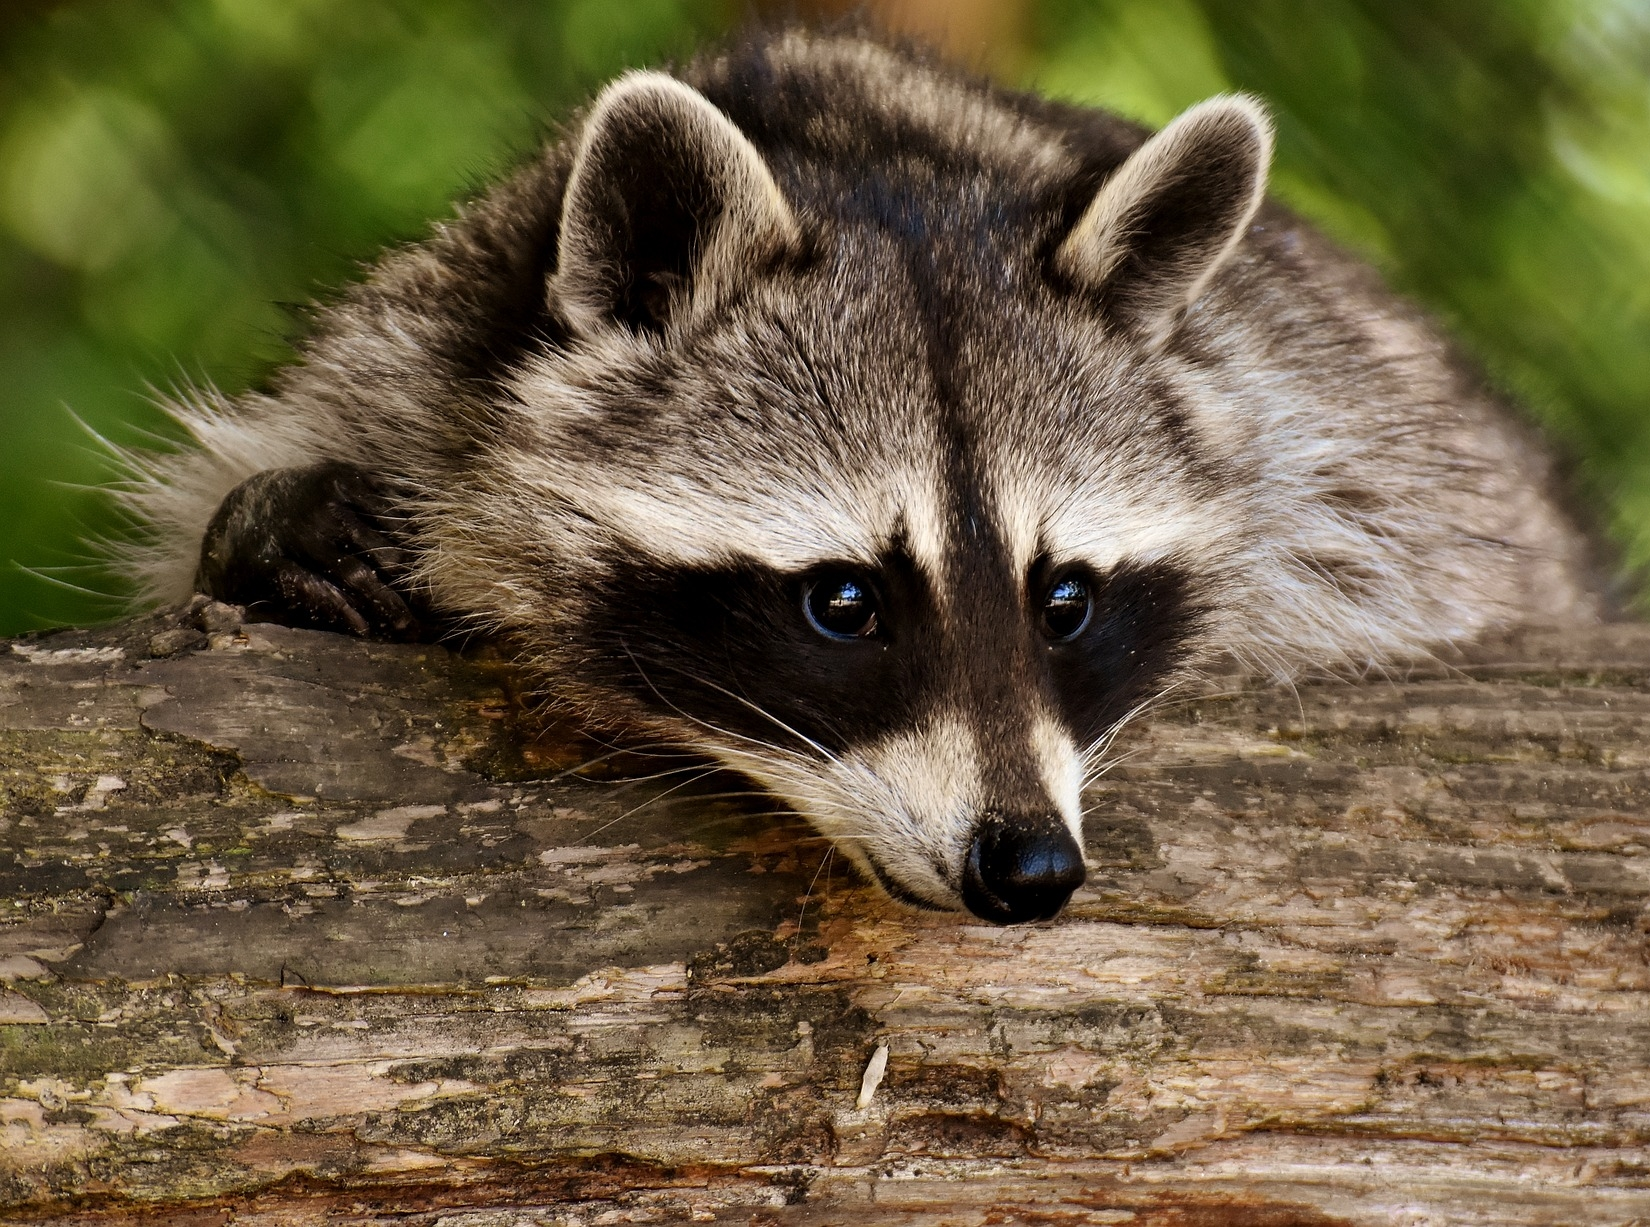 raccoon-3538081_1920.jpg